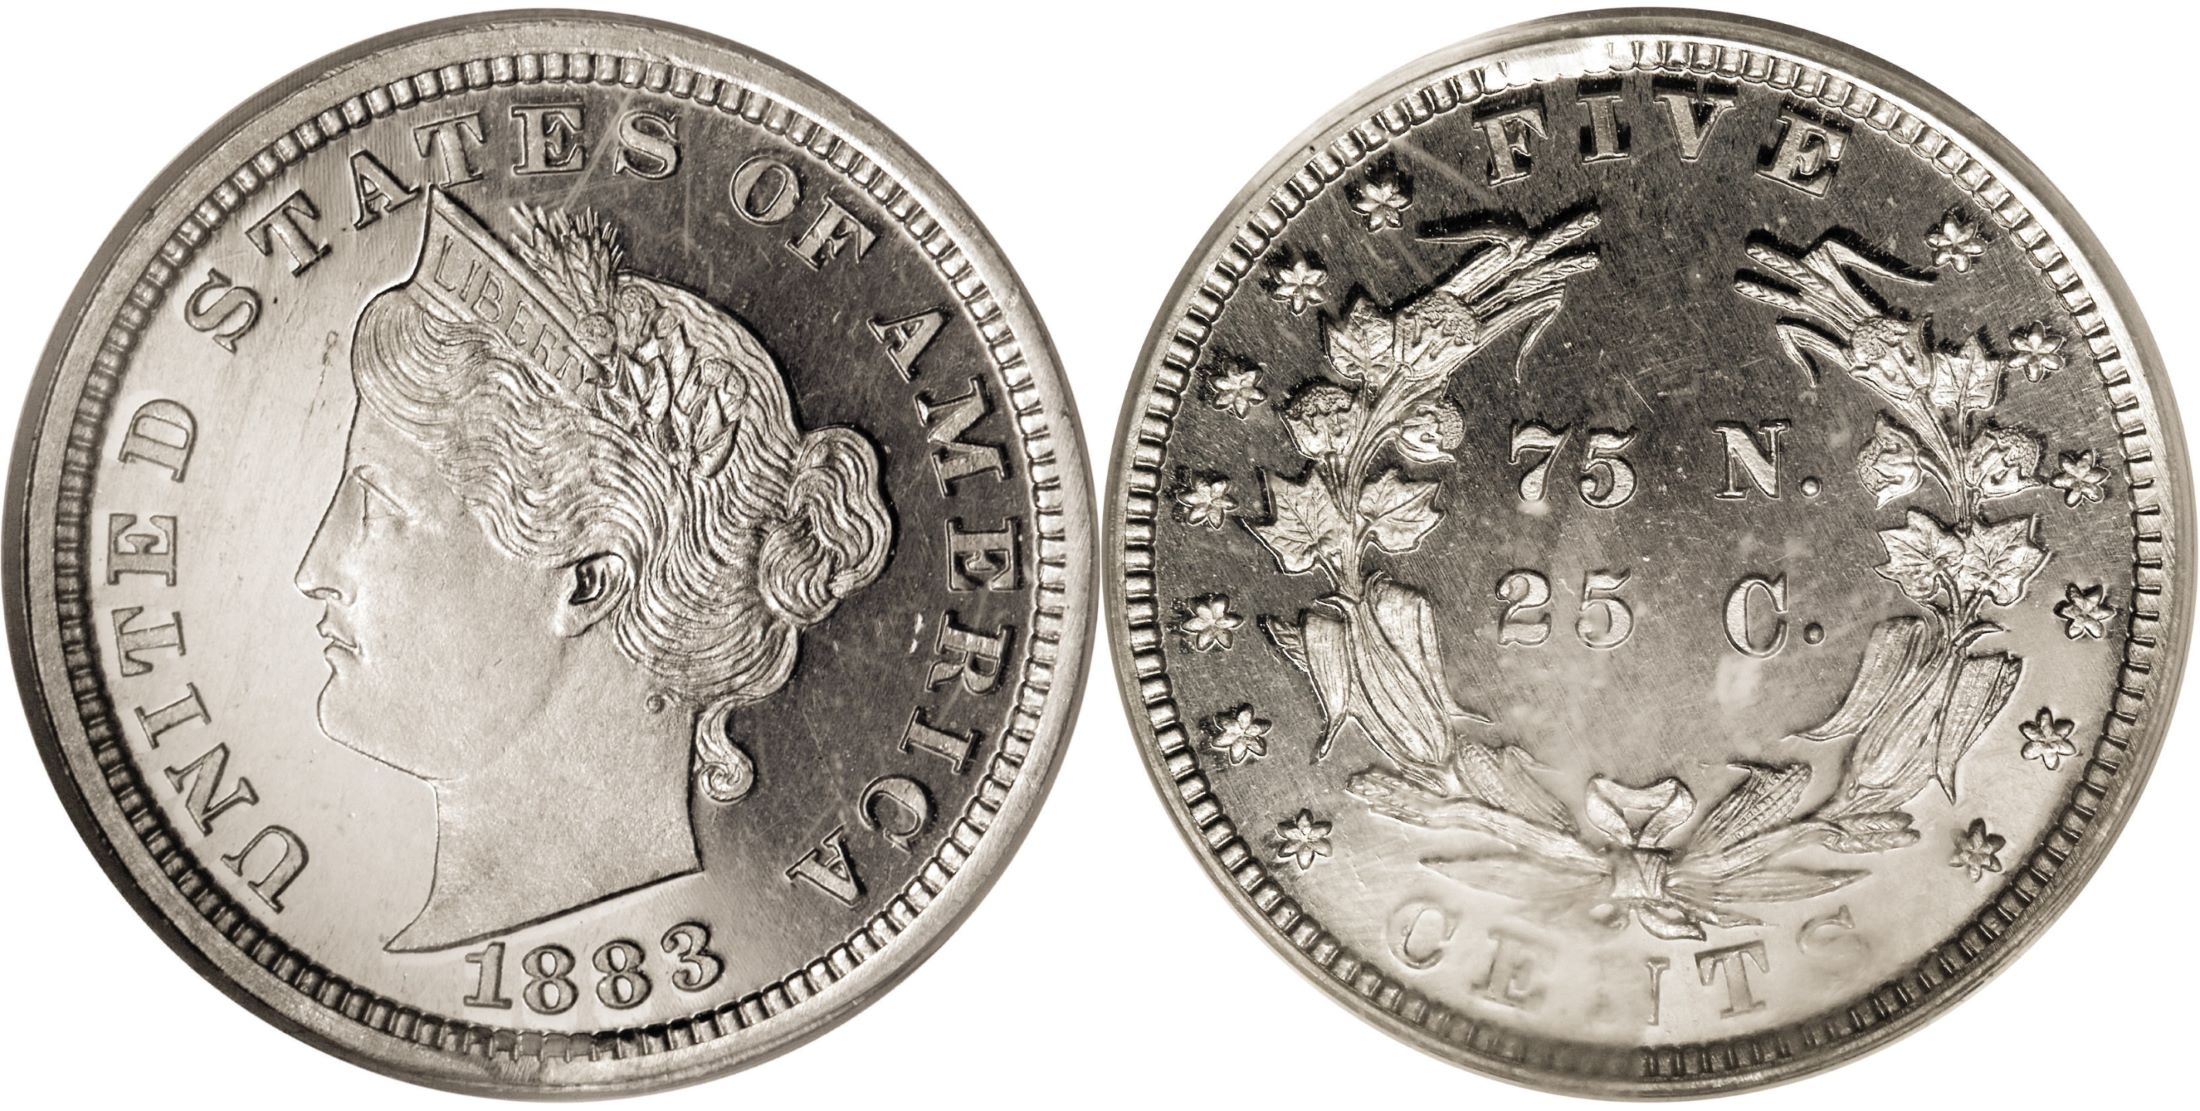 """PCGS PR66DC<BR>Image courtesy of <a href=""""http://www.ha.com"""" target=""""_blank"""">Heritage Numismatic Auctions</a>"""